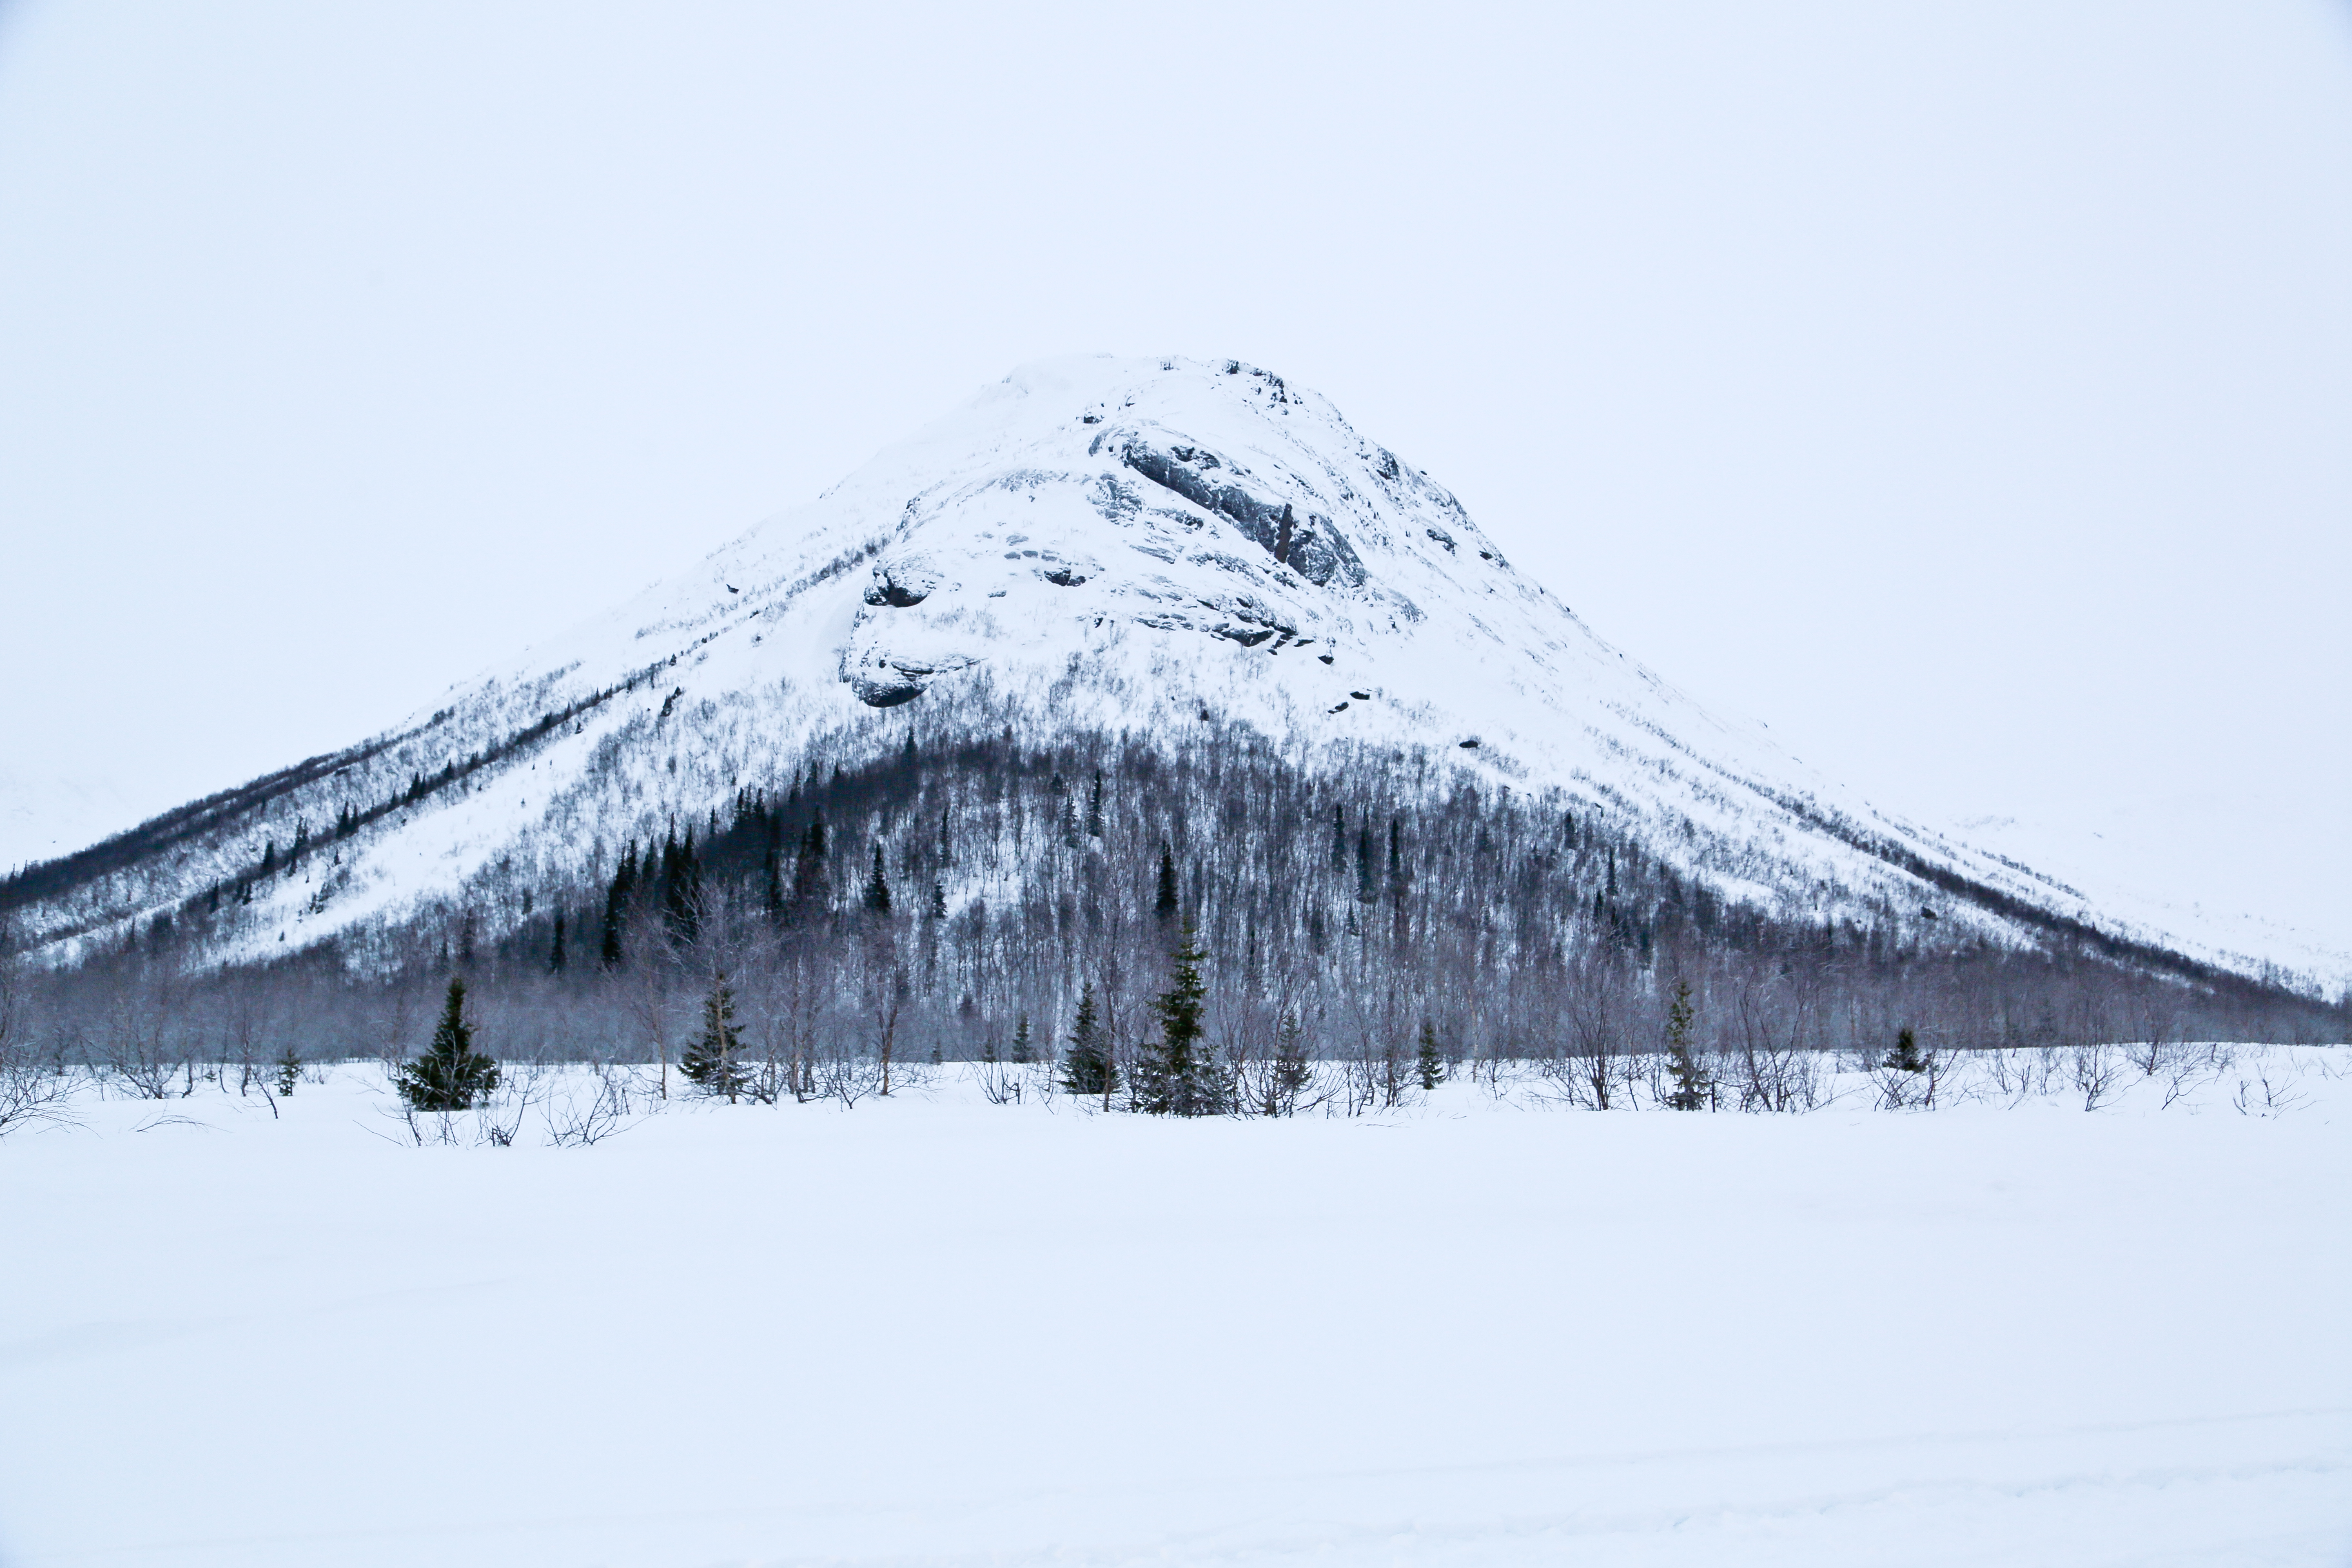 Mountain covered in snow in Russia